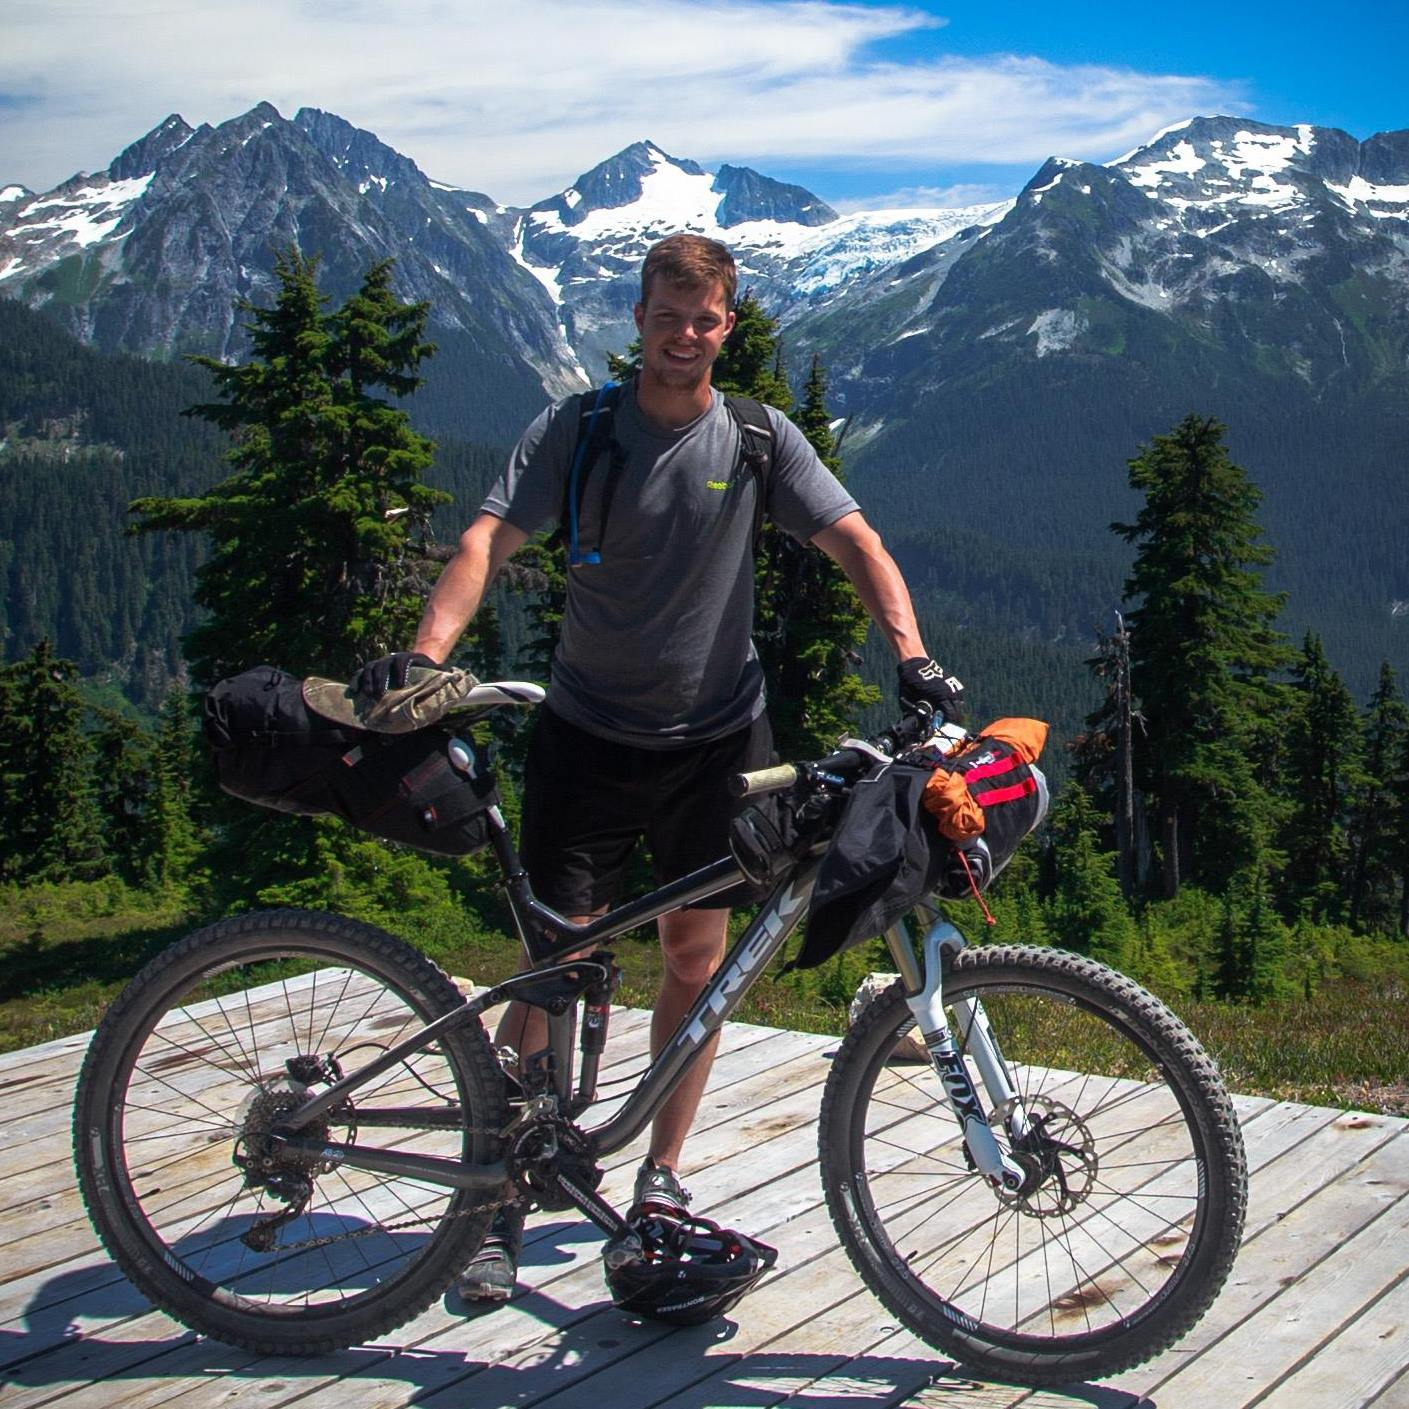 Matthew Bunker stands with his bicycle with snowcapped mountains in the background.